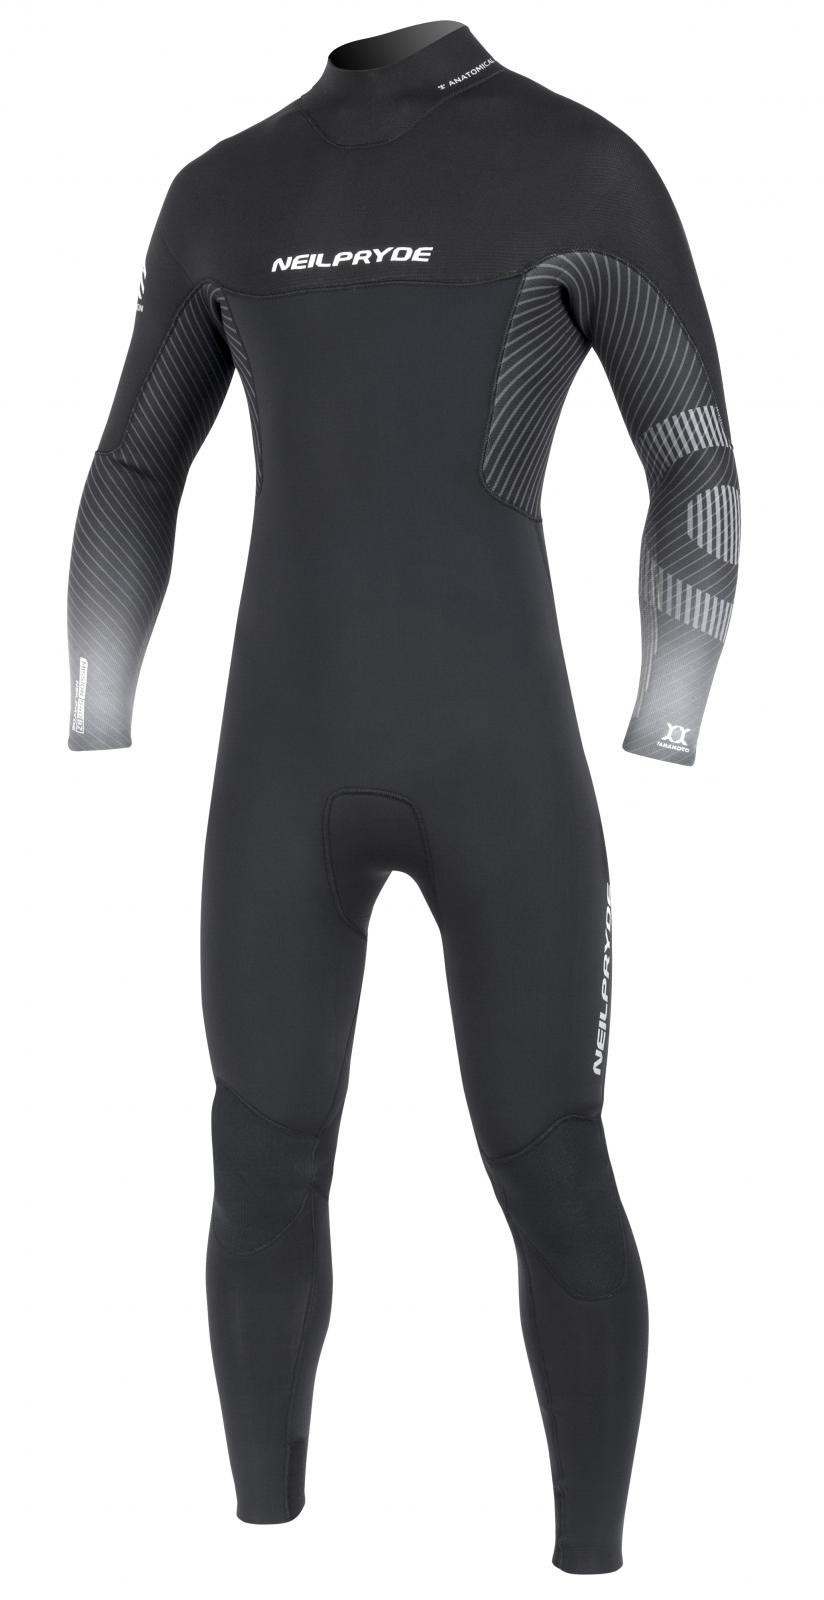 Neilpryde wetsuit Mission 5/4